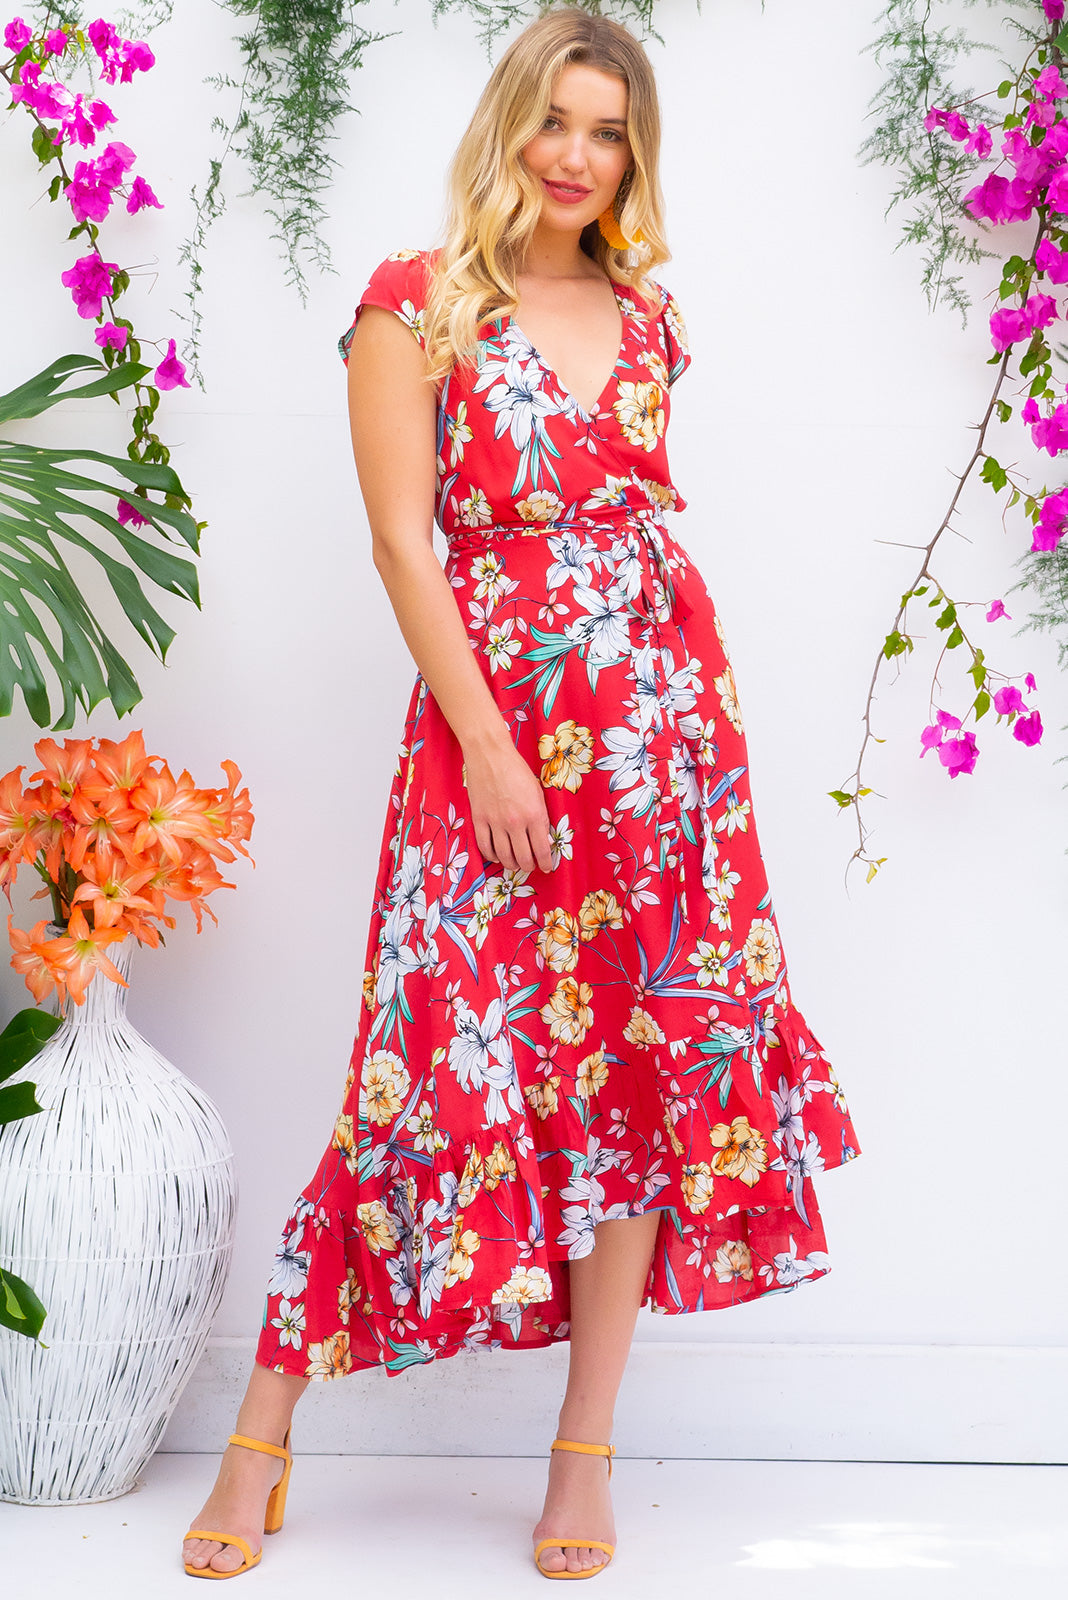 Symphony Summer Red Maxi Wrap Dress with a fitted bodice, cap sleeve and frill around the hem in a bright red floral print on soft rayon